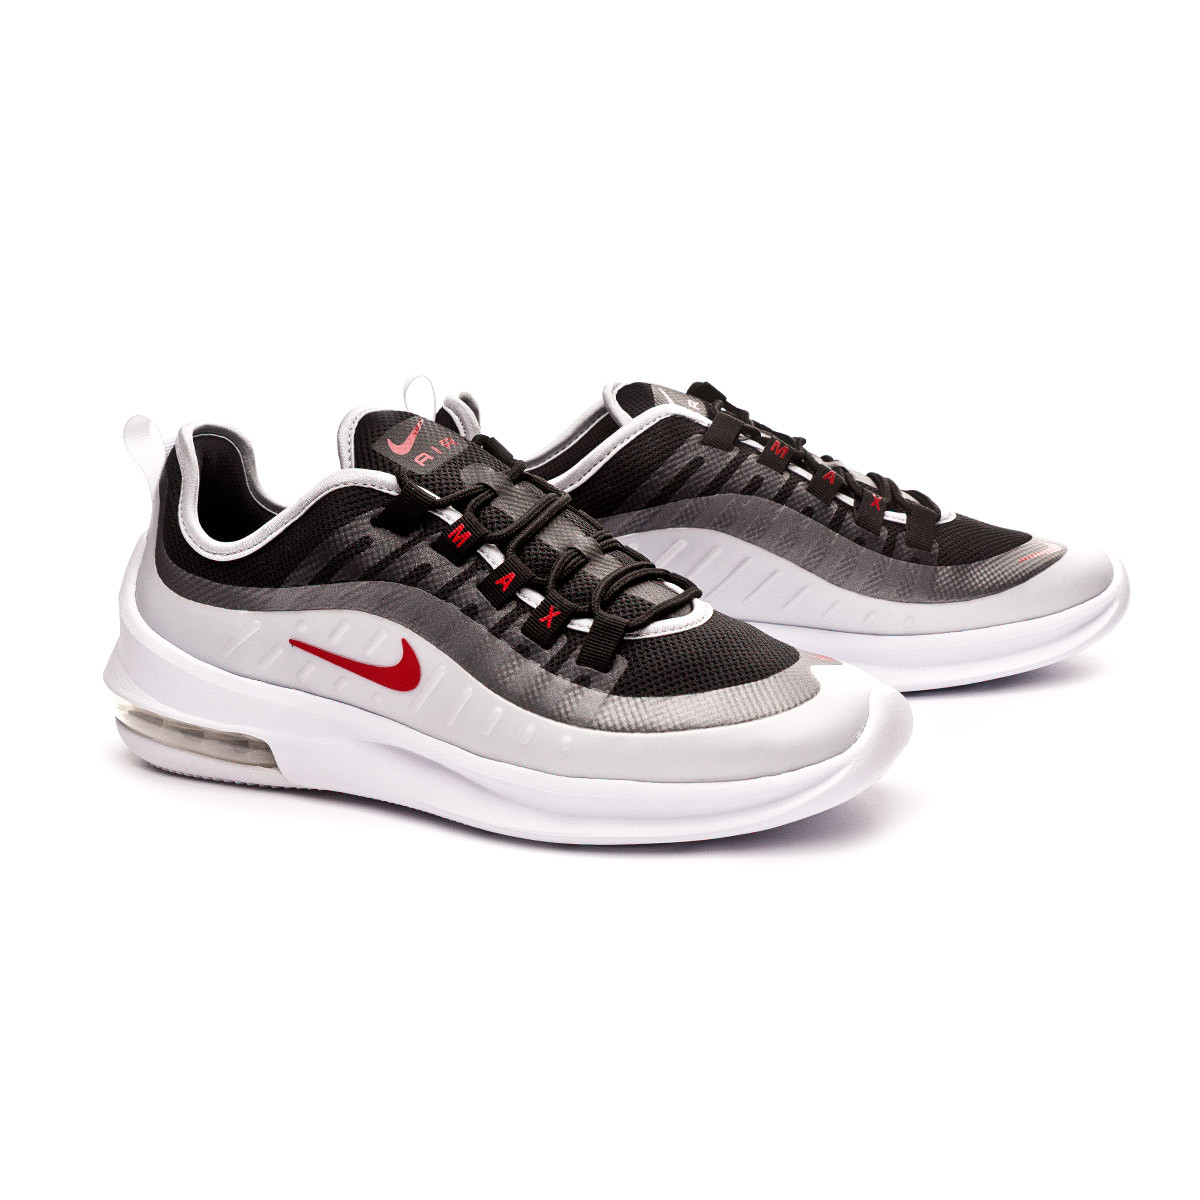 Nike Air Max Axis BlackSport RedMetallic PlatinumWhite Shoes